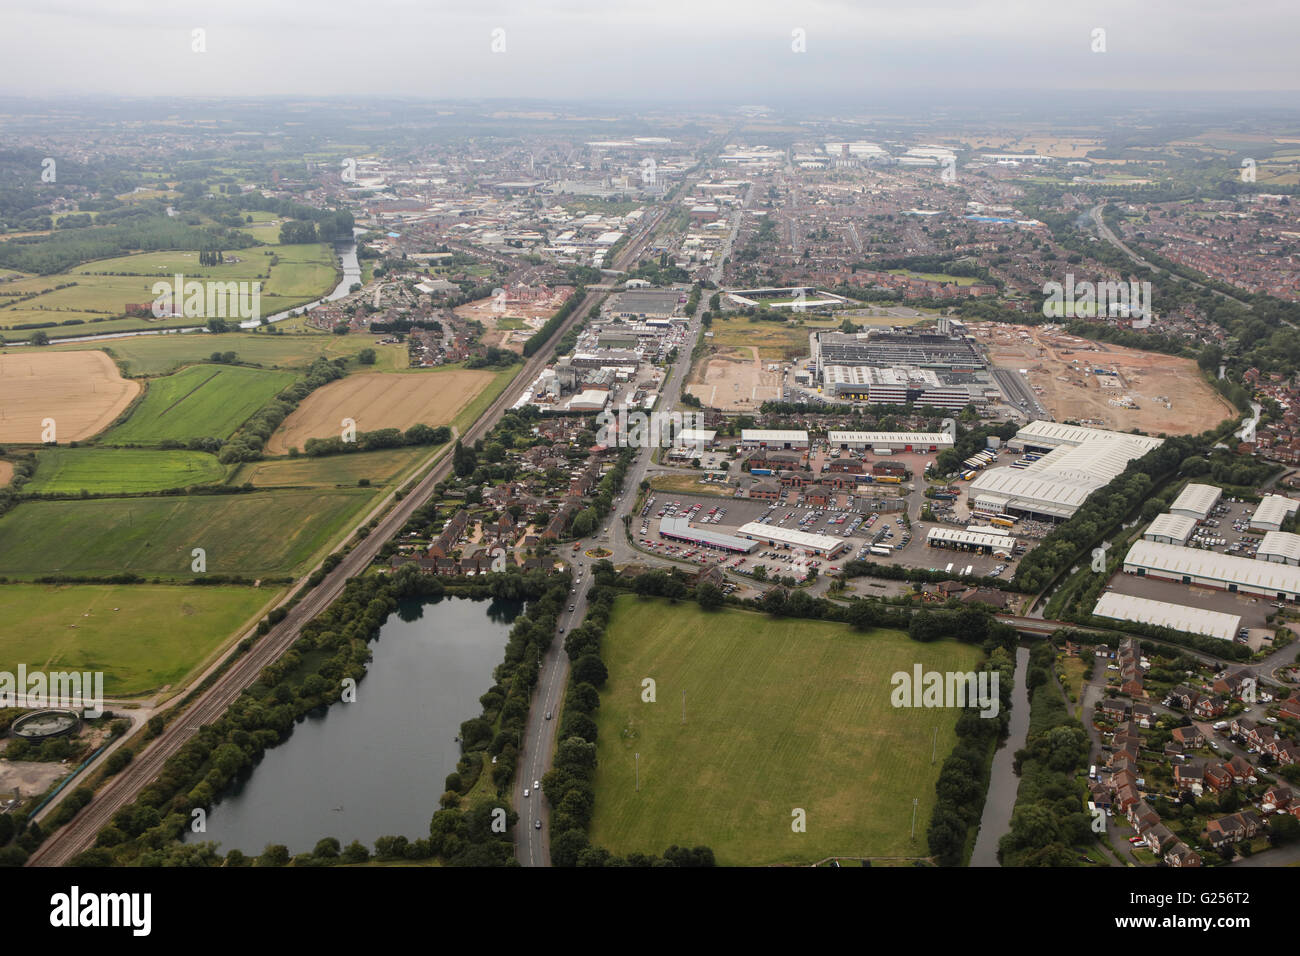 An aerial view of the East Staffordshire town of Burton upon Trent - Stock Image